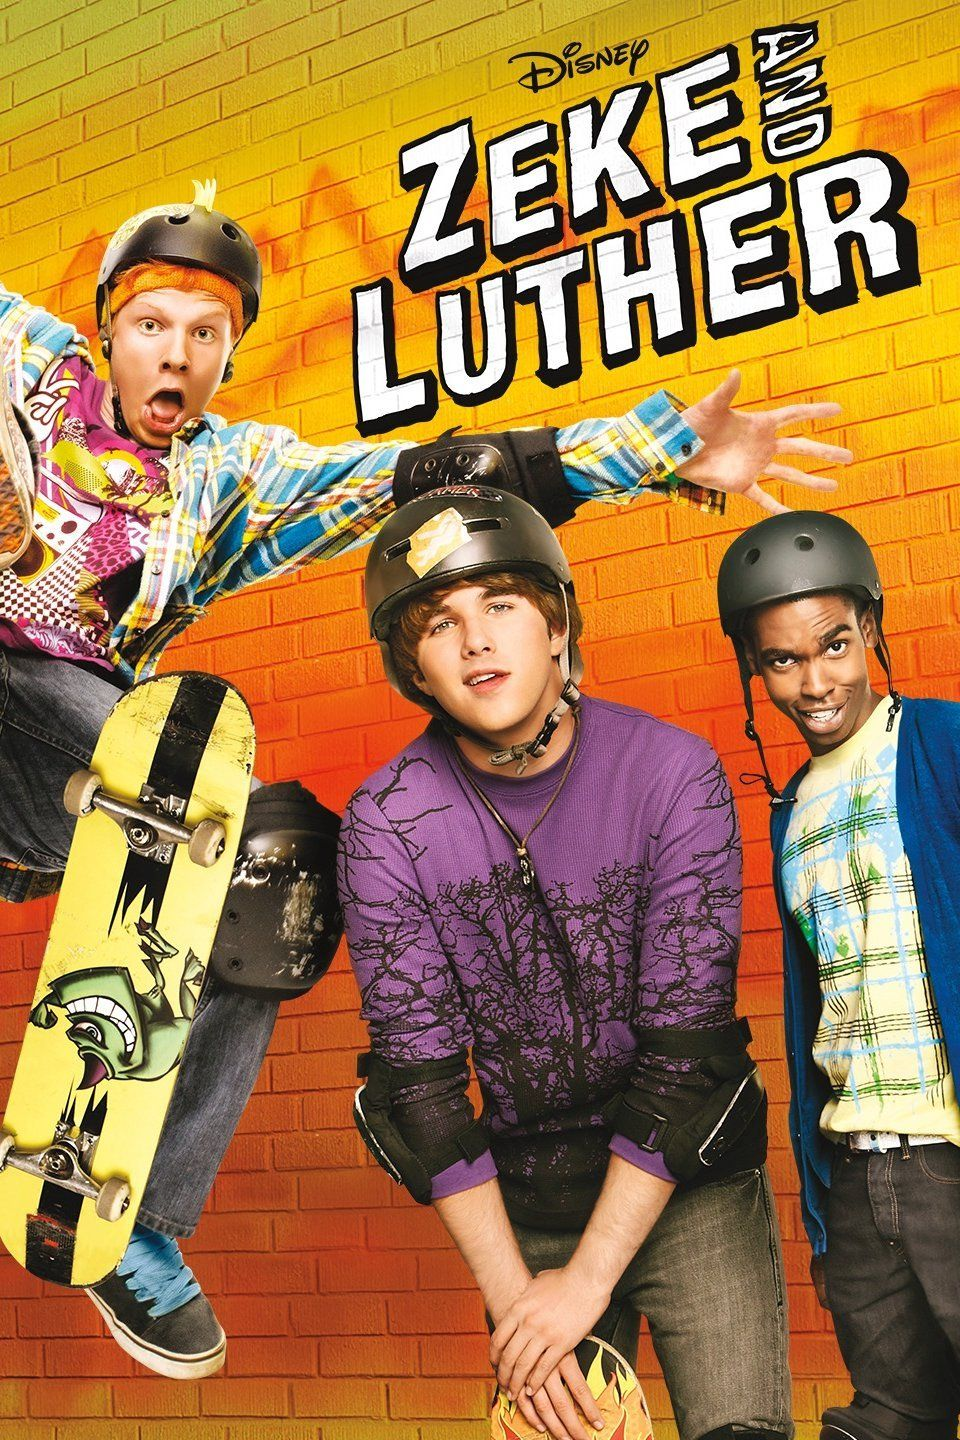 Disney Xd Skateboard Show : disney, skateboard, Luther, Luther,, Favorite, Shows,, Newest, Shows